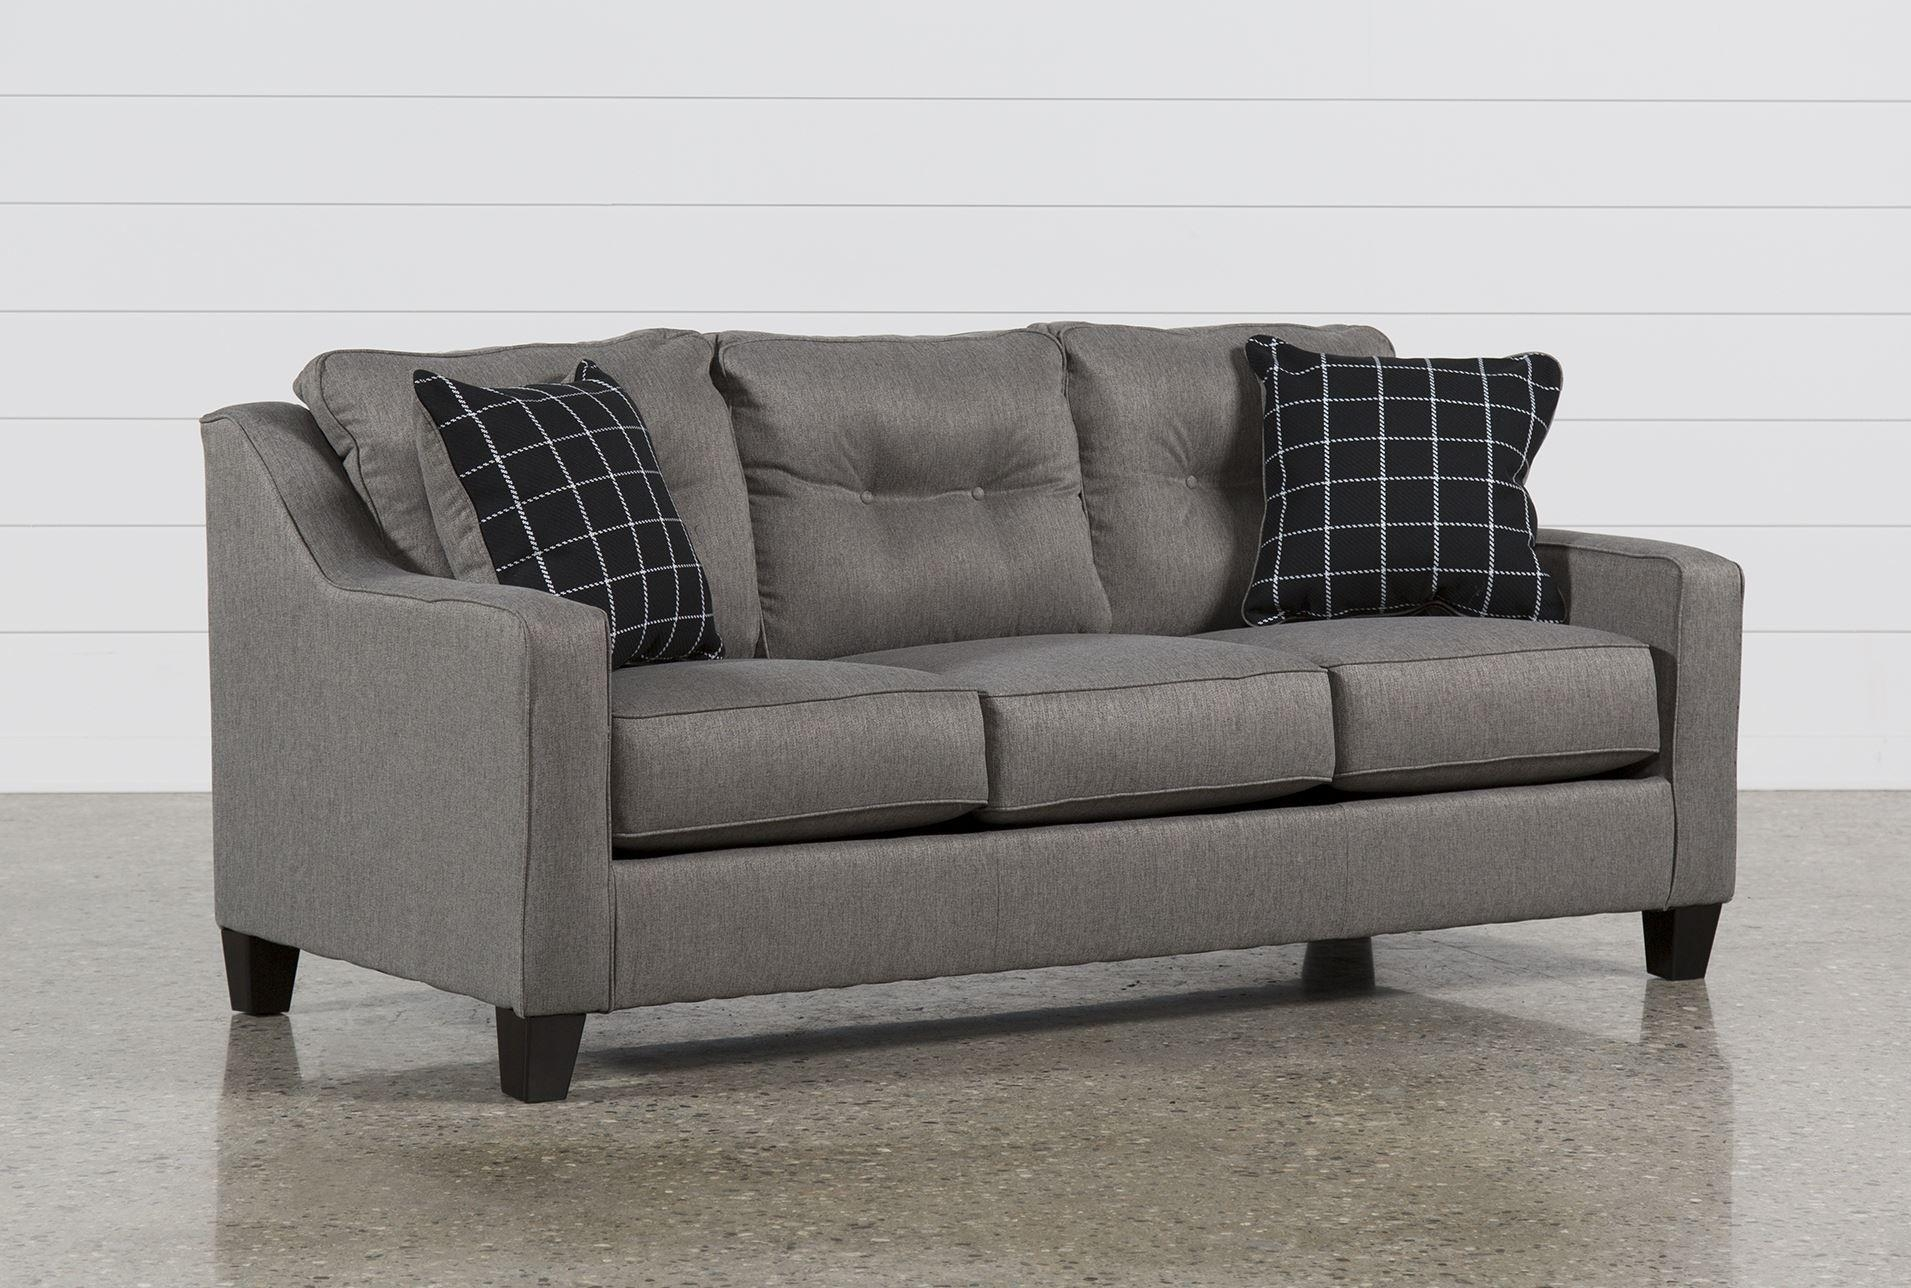 Bedroom Furniture Sets : Sectional Recliner Ashley Furniture Sofa Regarding Sofa Sleepers Queen Size (View 20 of 20)